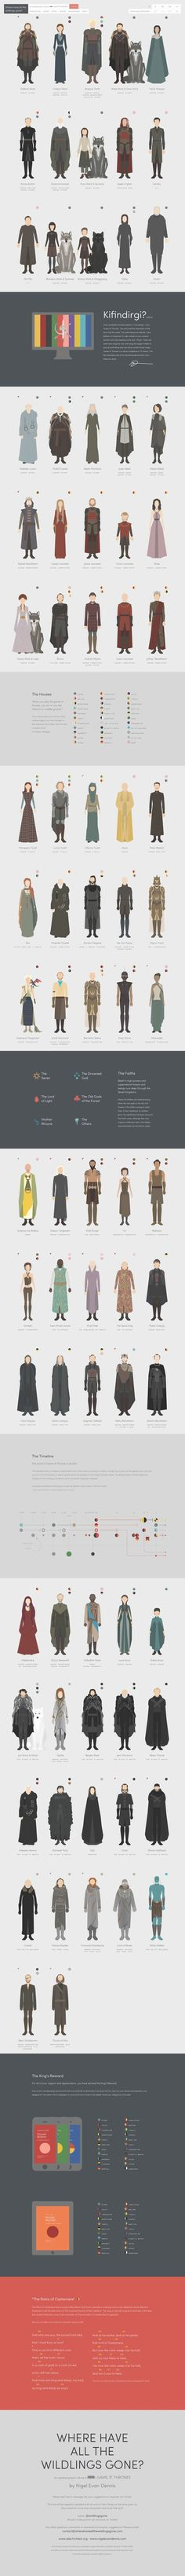 Game of Thrones website infographic by Nigel Evan Dennis